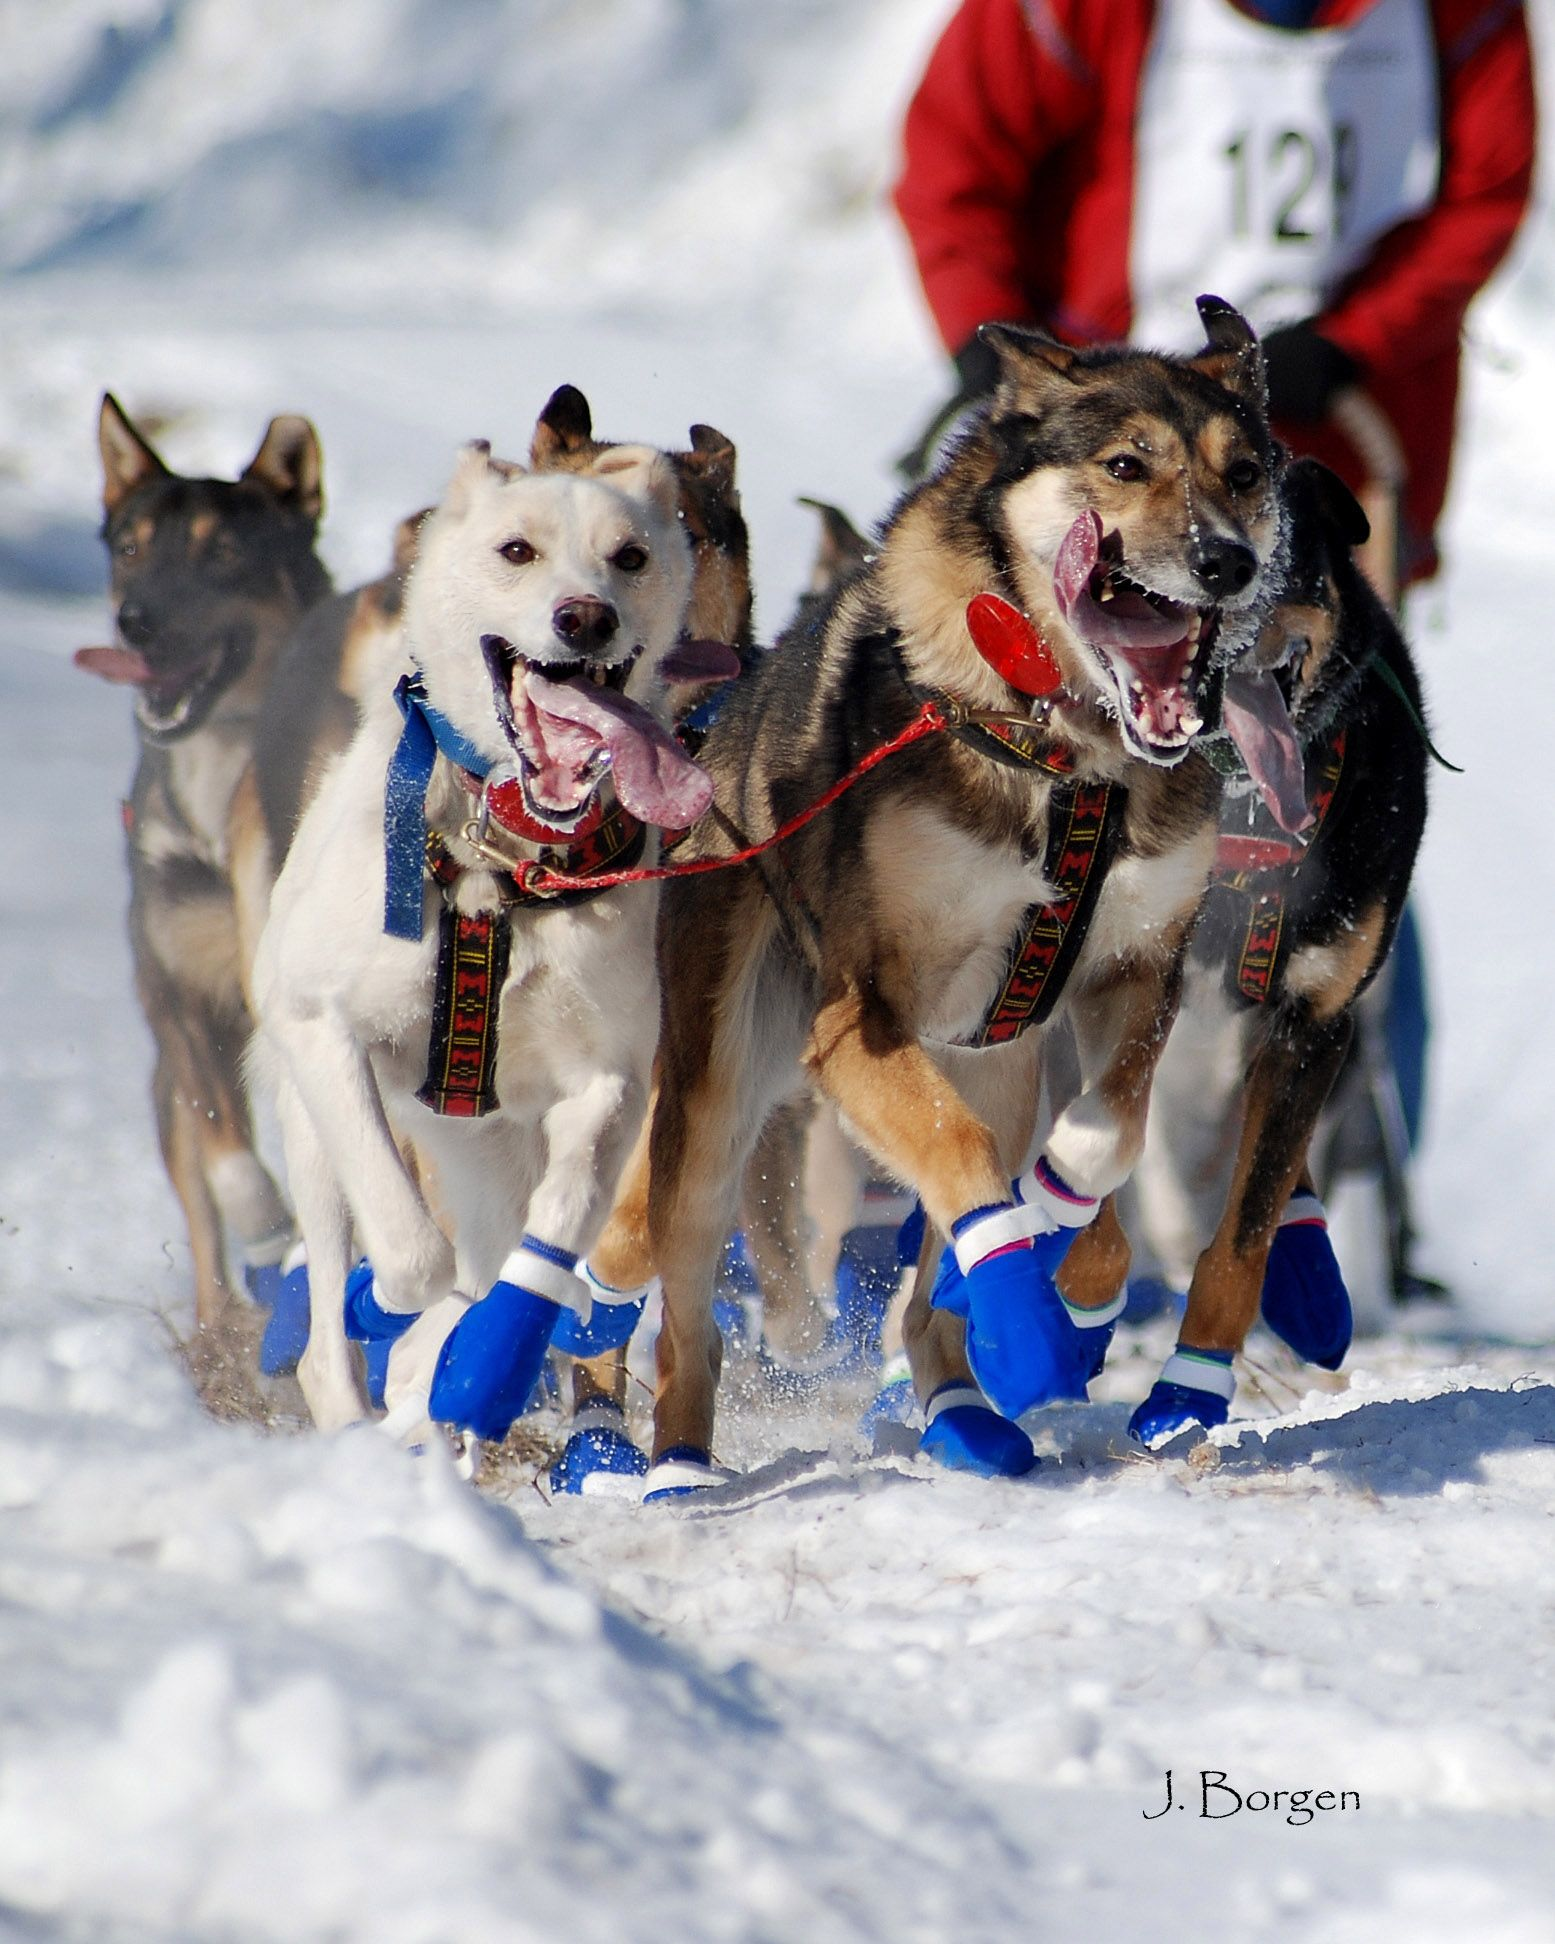 Sled Dogs Look At The Joy They Take In Their Job Many Dog